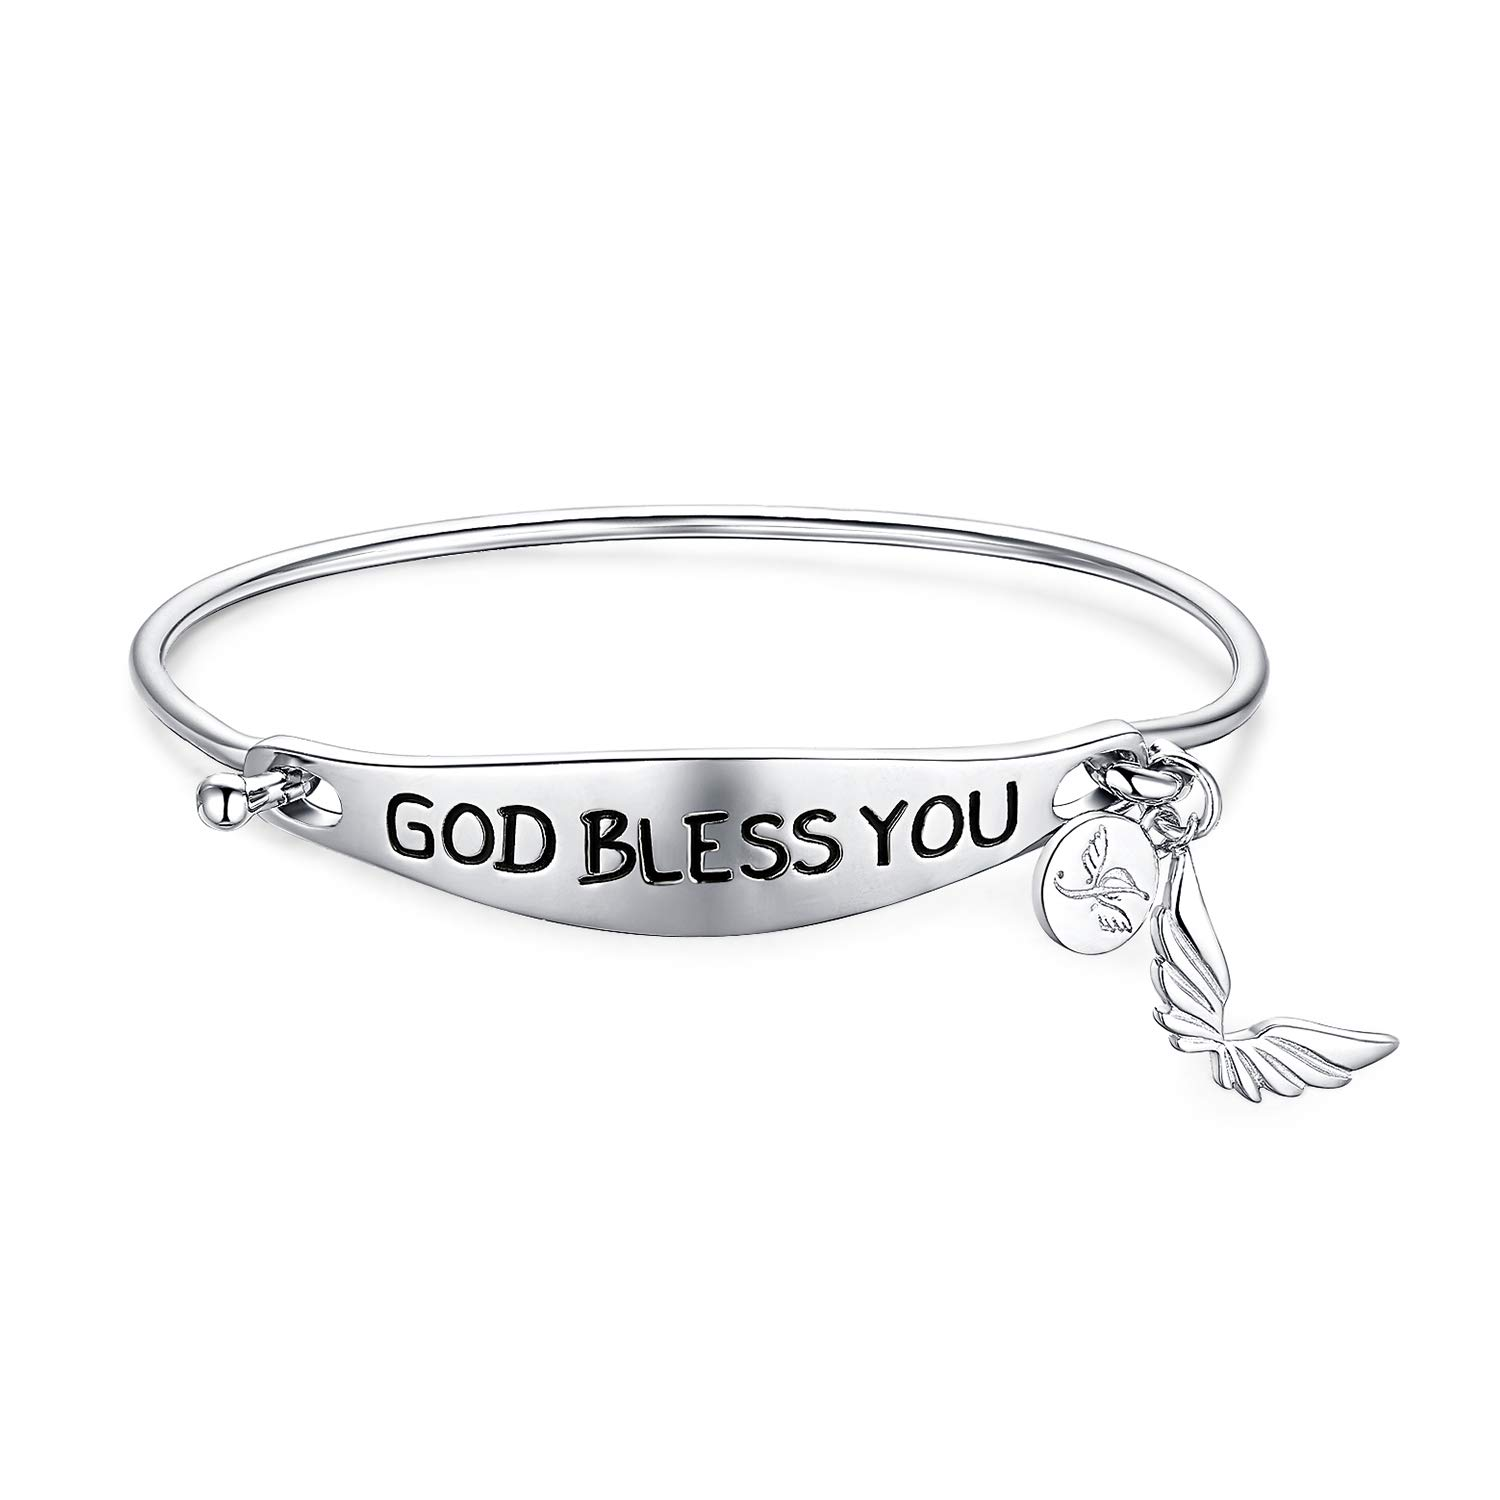 b02995d4b74b Amazon.com  JewelryPalace Personalized Hand Stamped God Bless You Dangle  Butterfly 925 Sterling Silver Bangle Bracelet  Jewelry